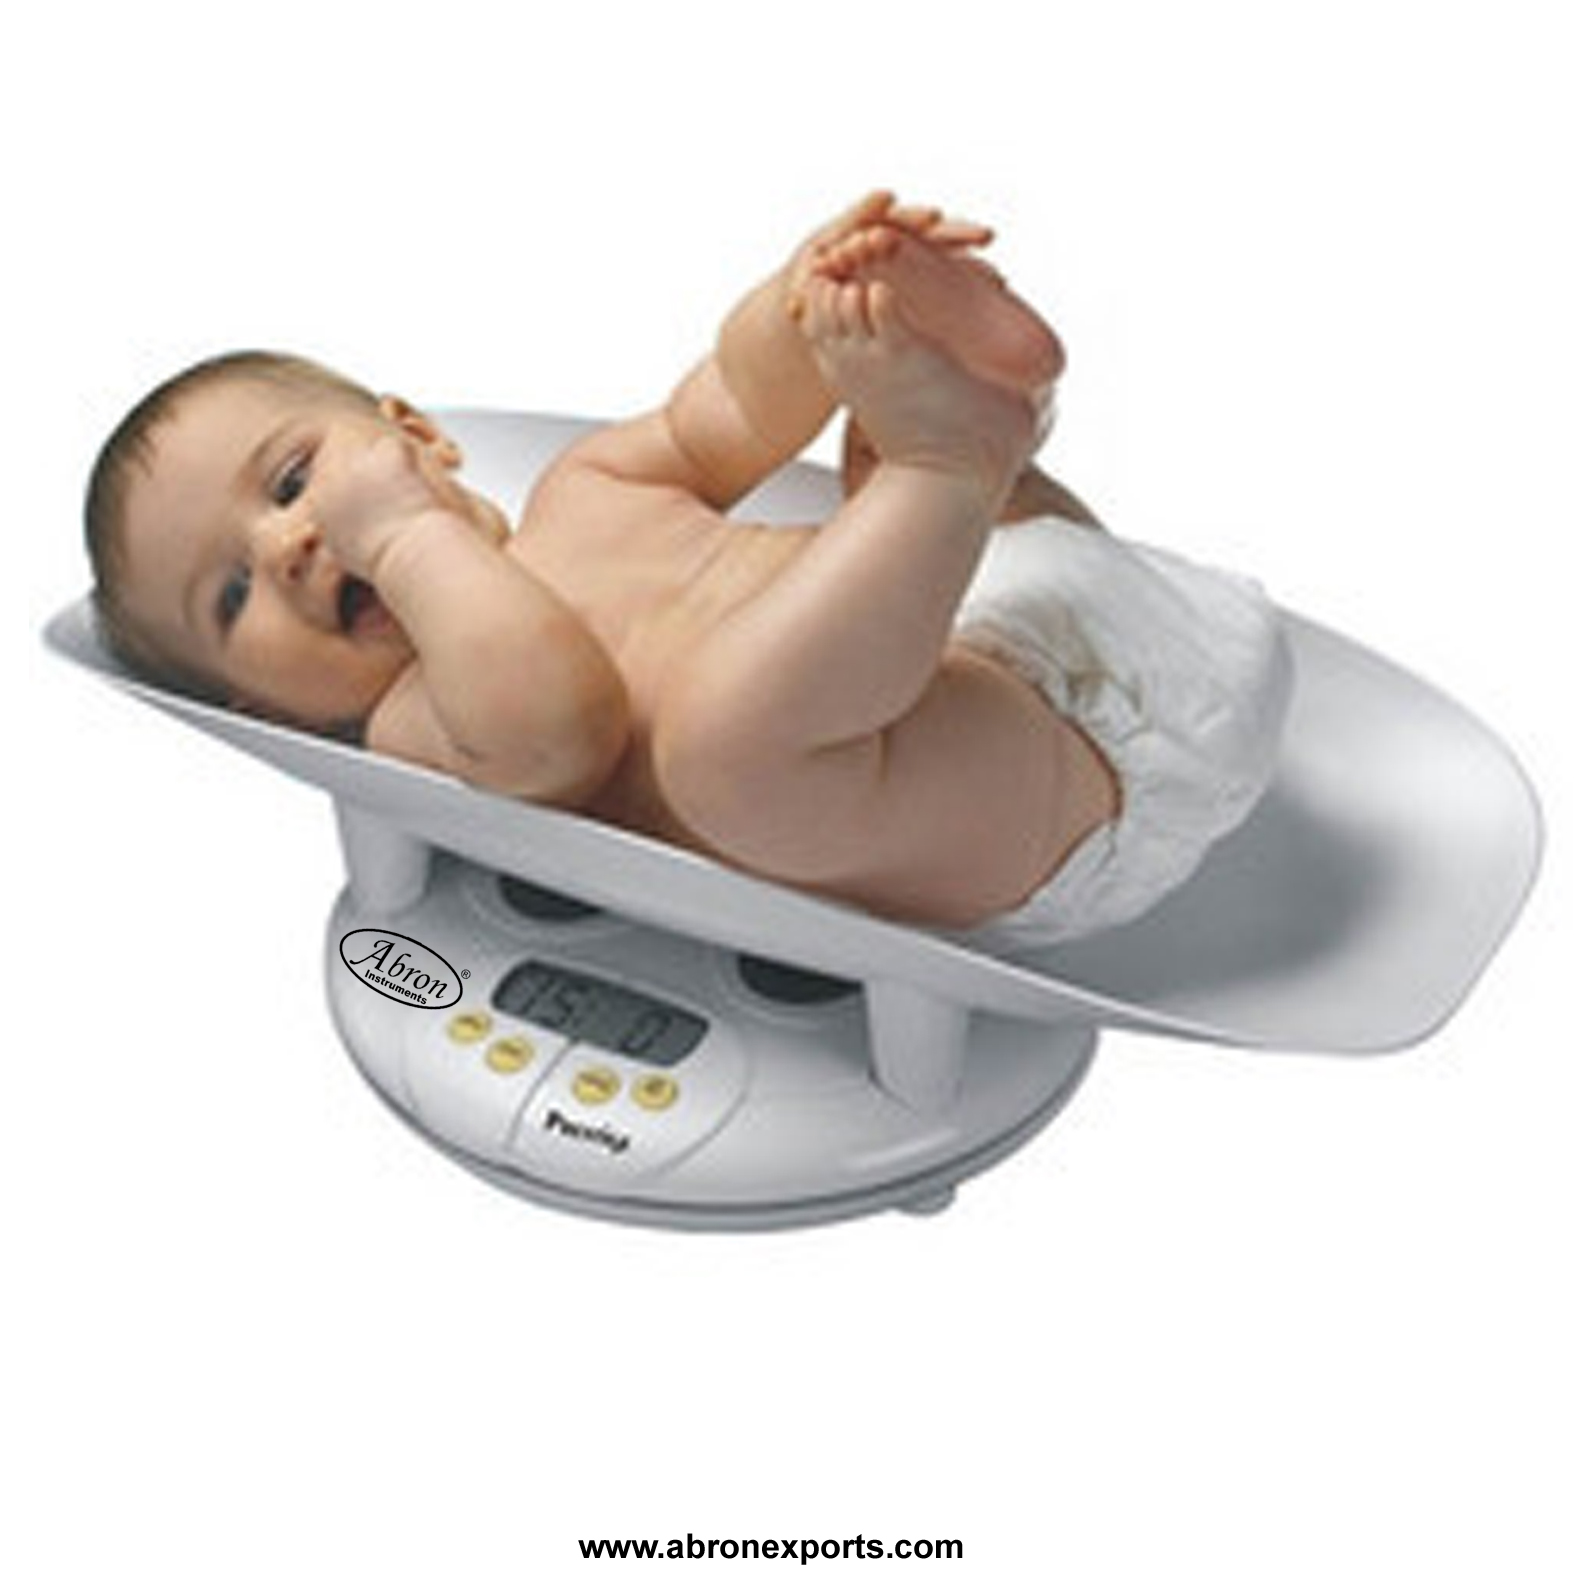 Digital baby scale..